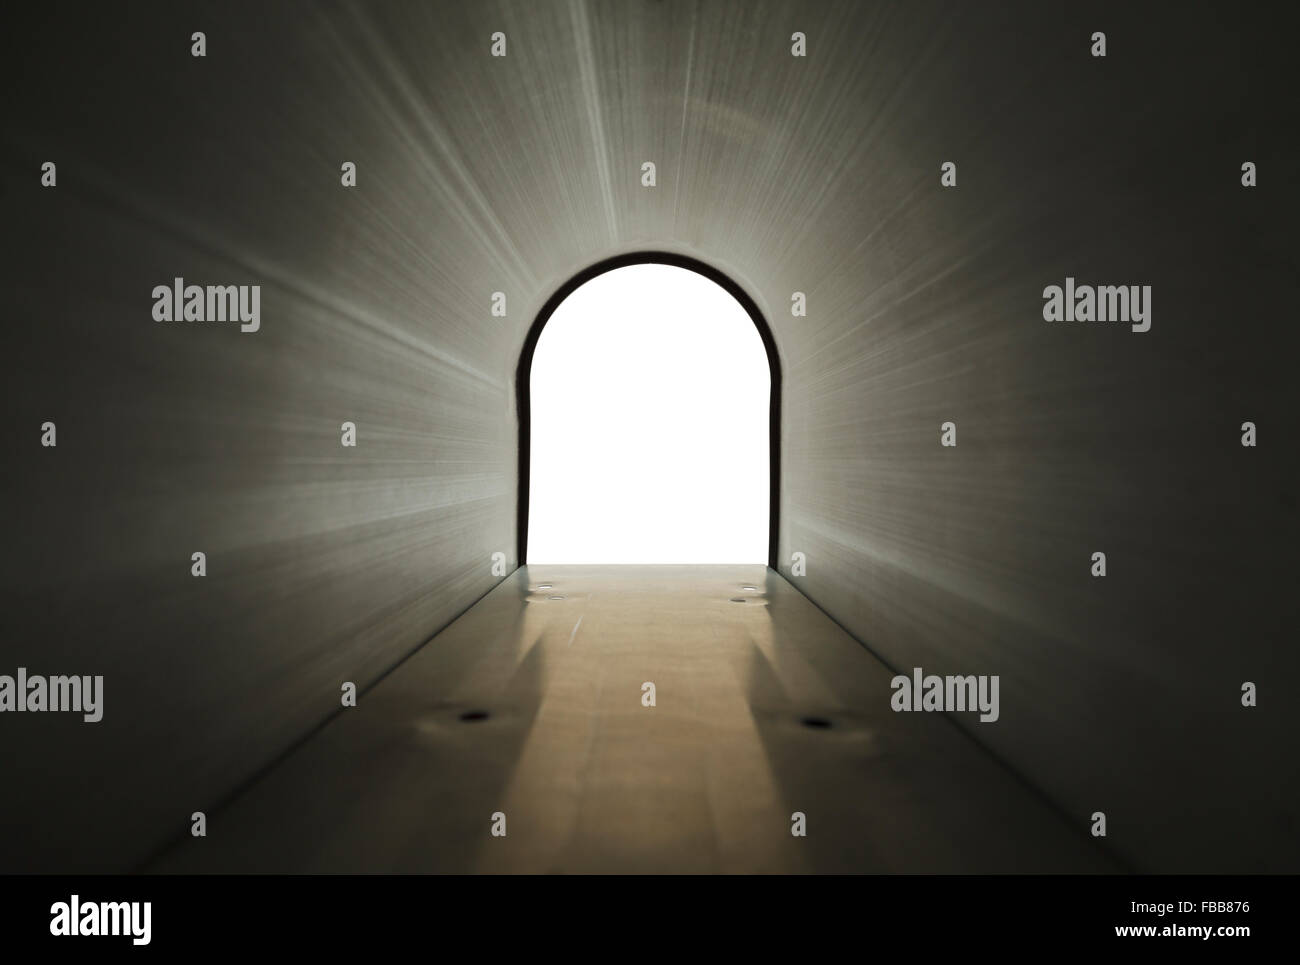 Inside Black Metal Mailbox Looking Out Isolated on White Background. - Stock Image